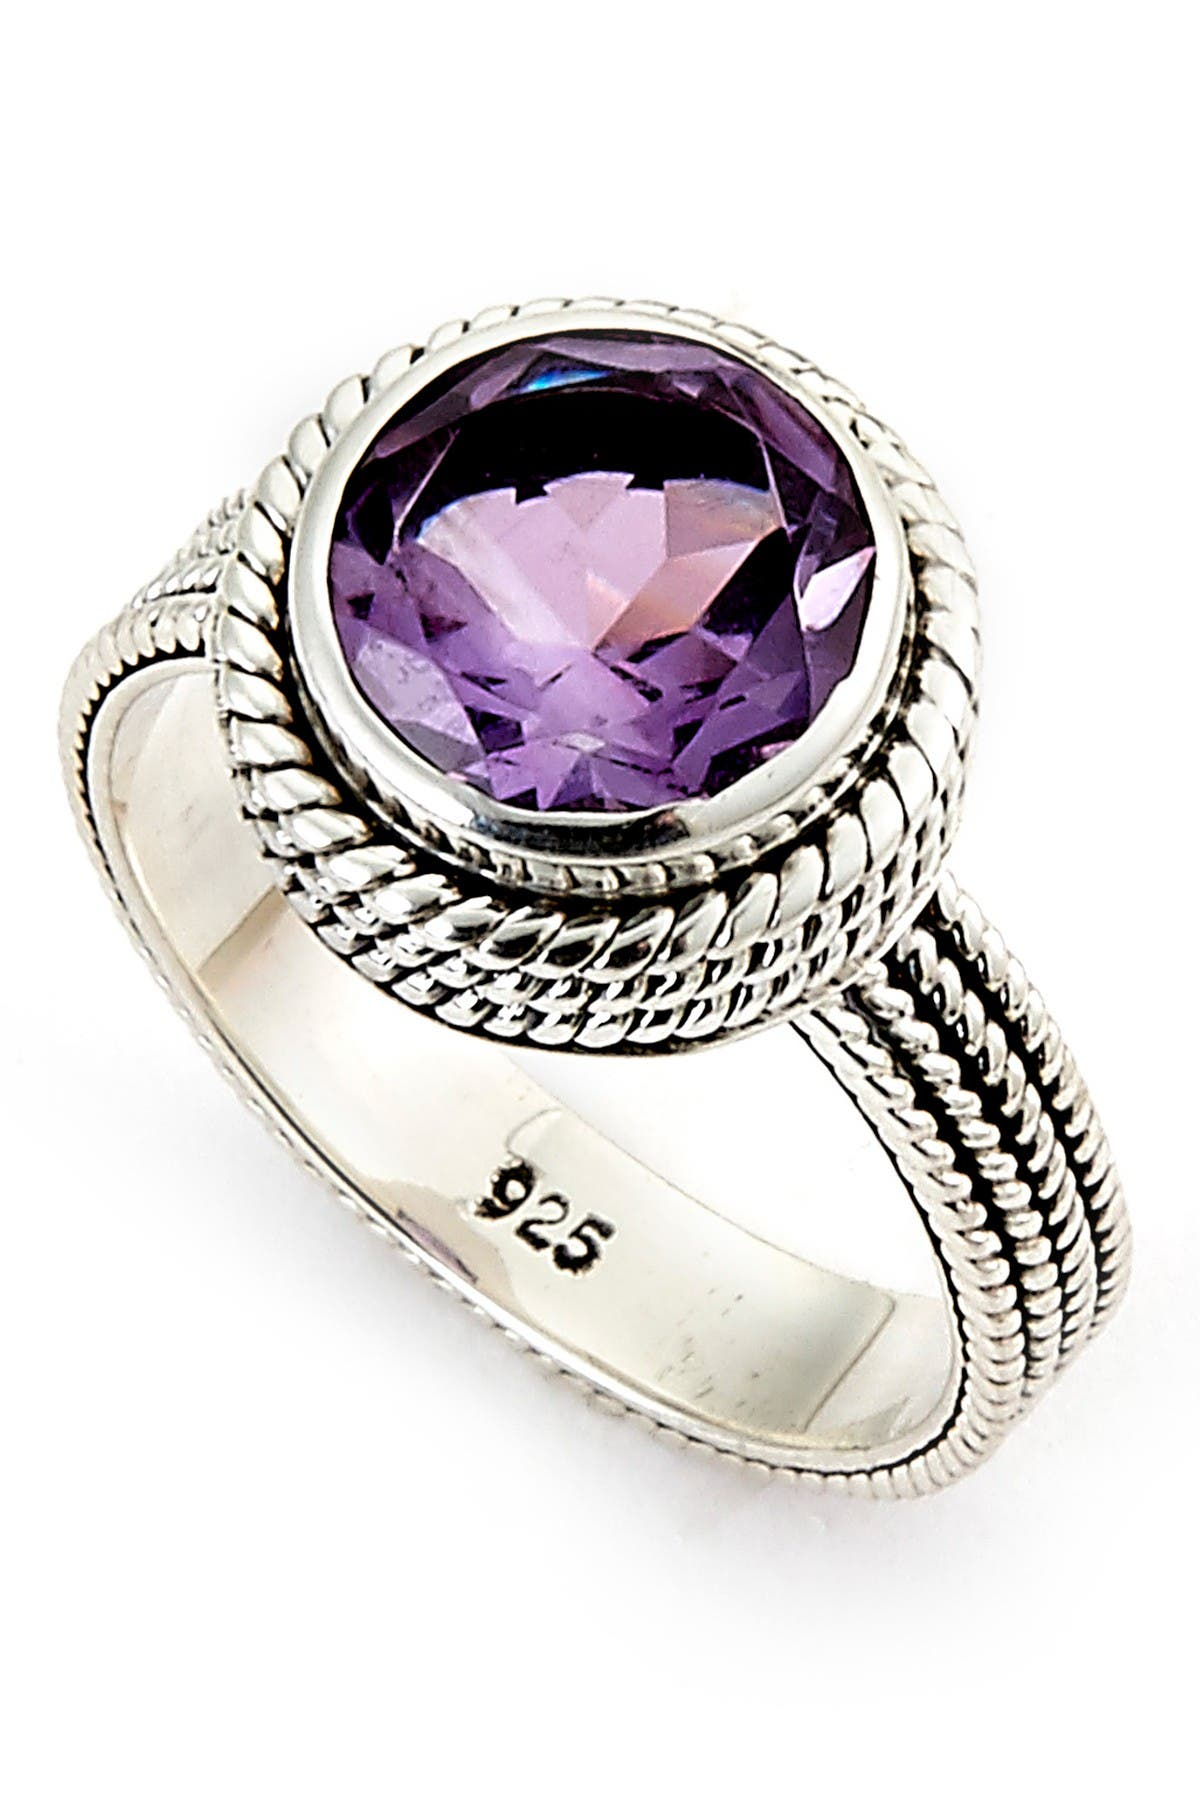 Image of Samuel B Jewelry Sterling Silver Round Amethyst Ring